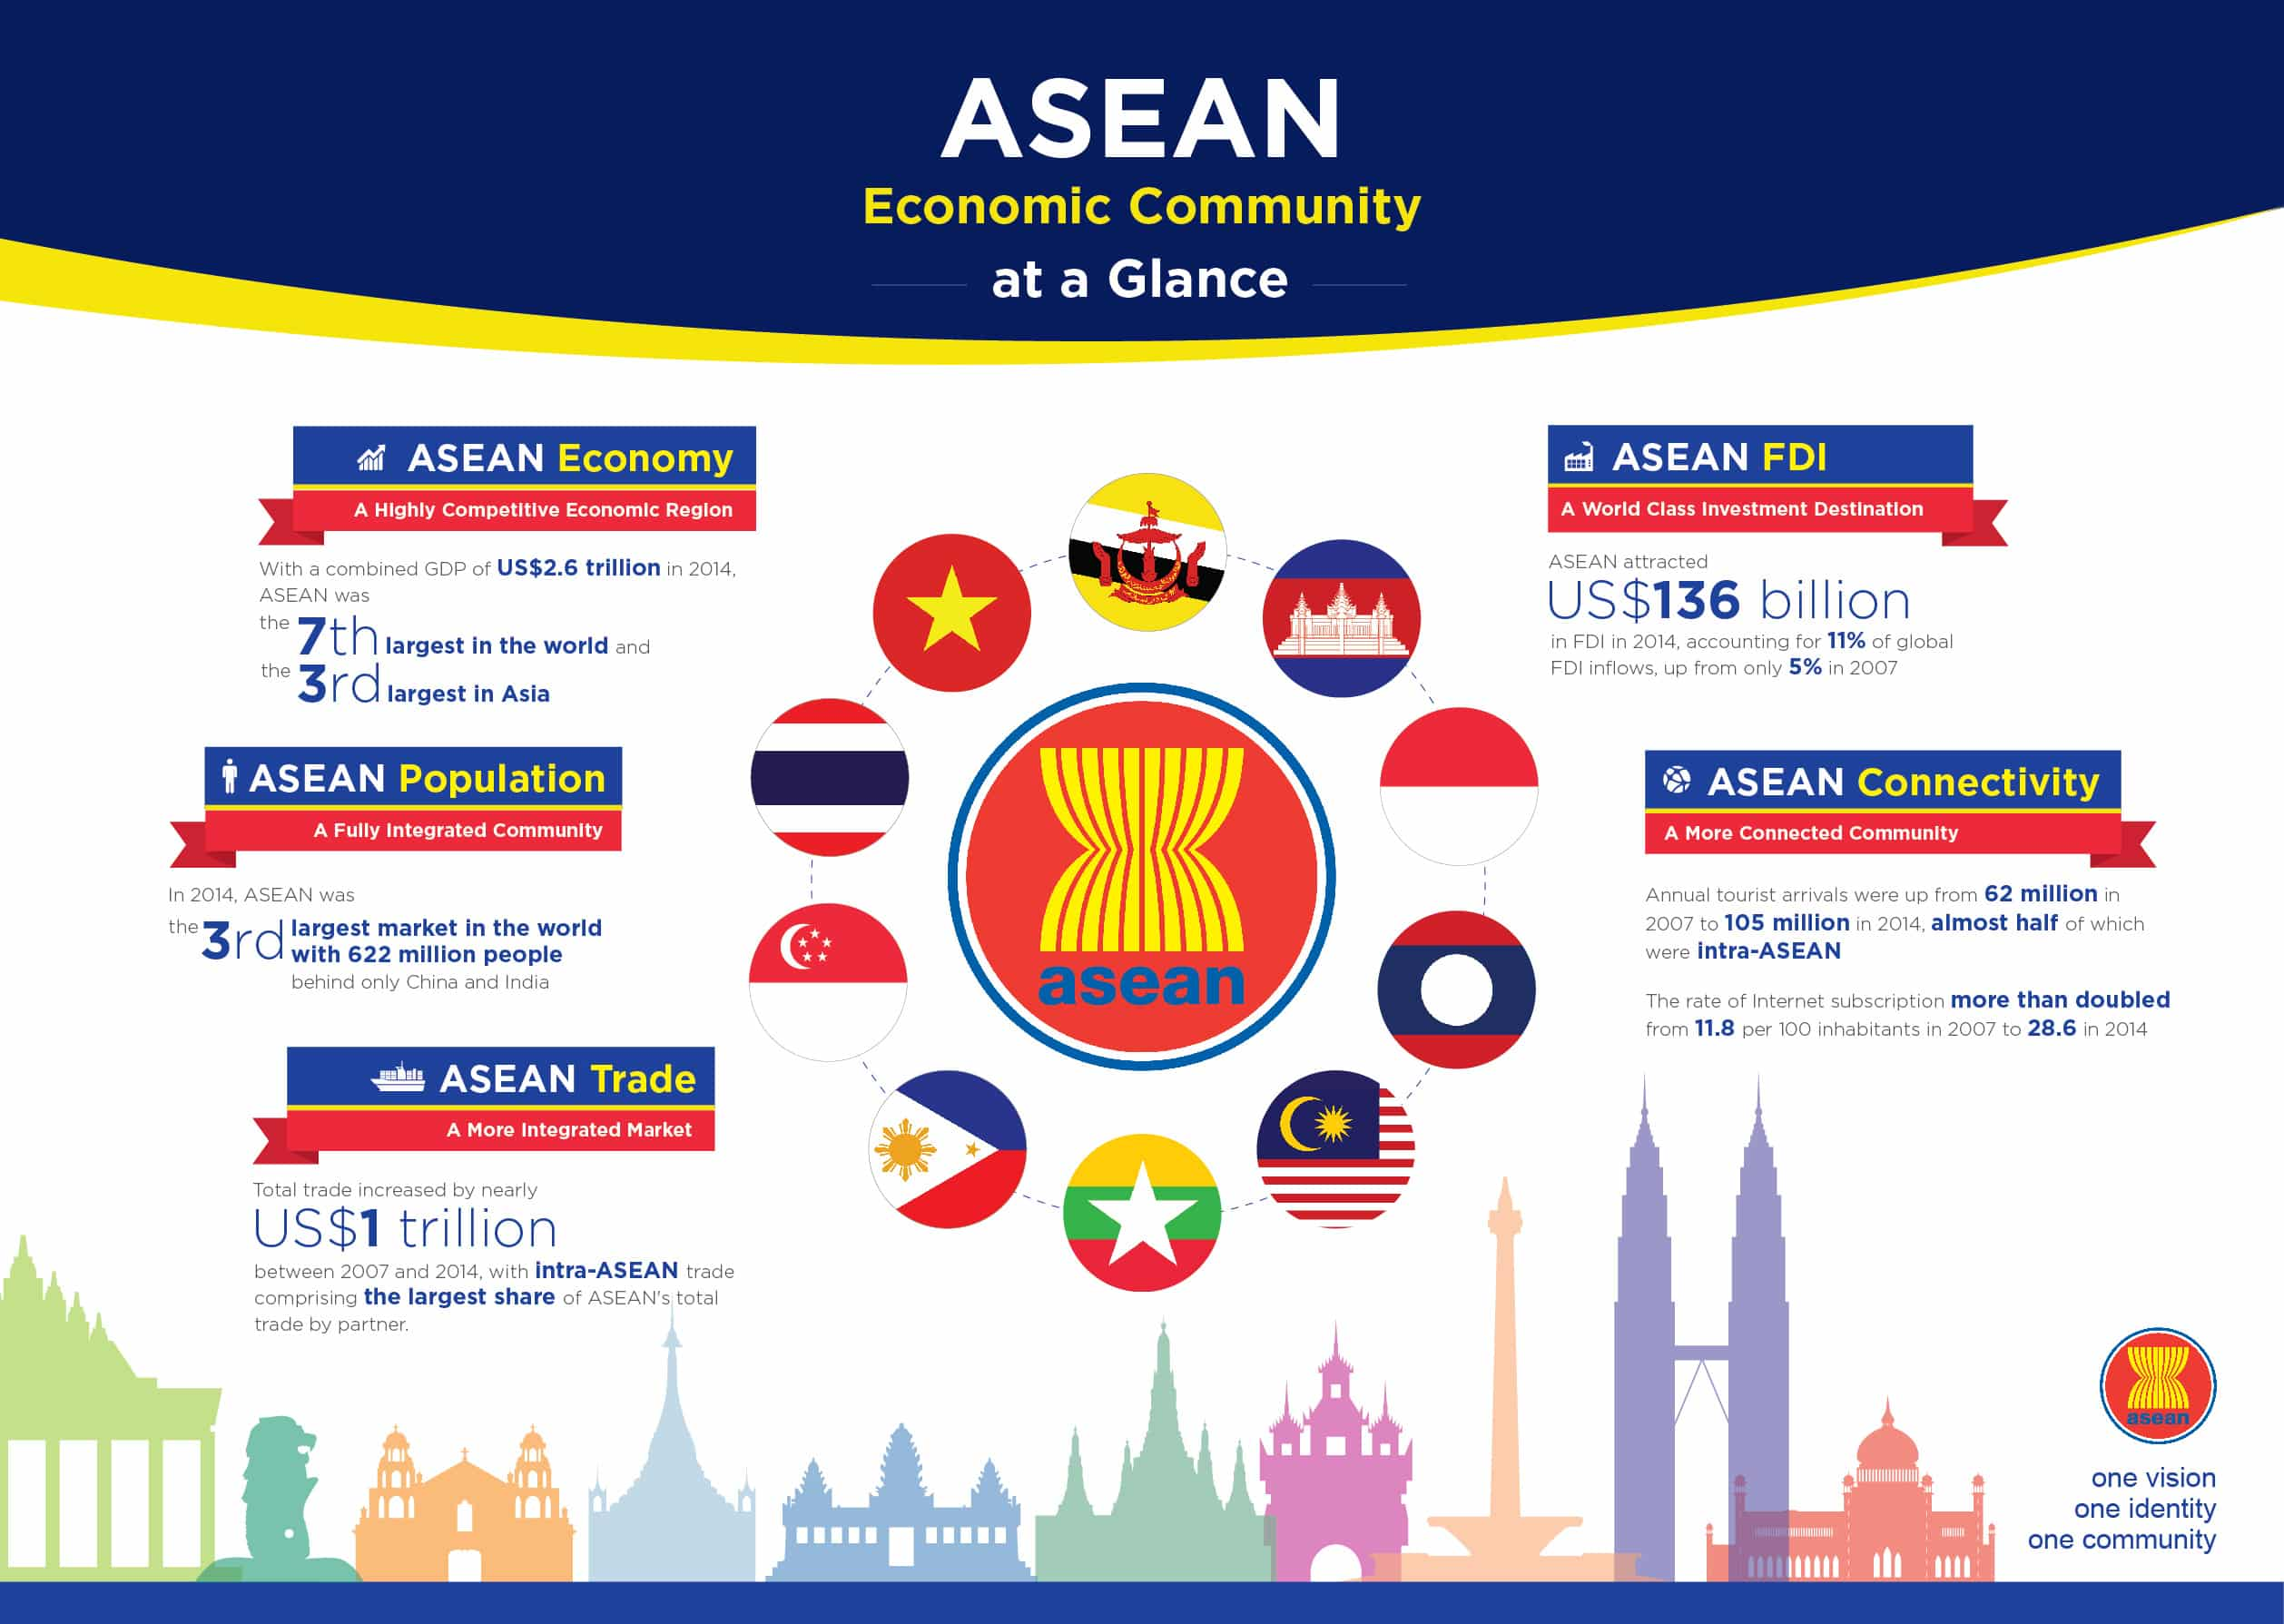 The ASEAN Community - A Community of Opportunities